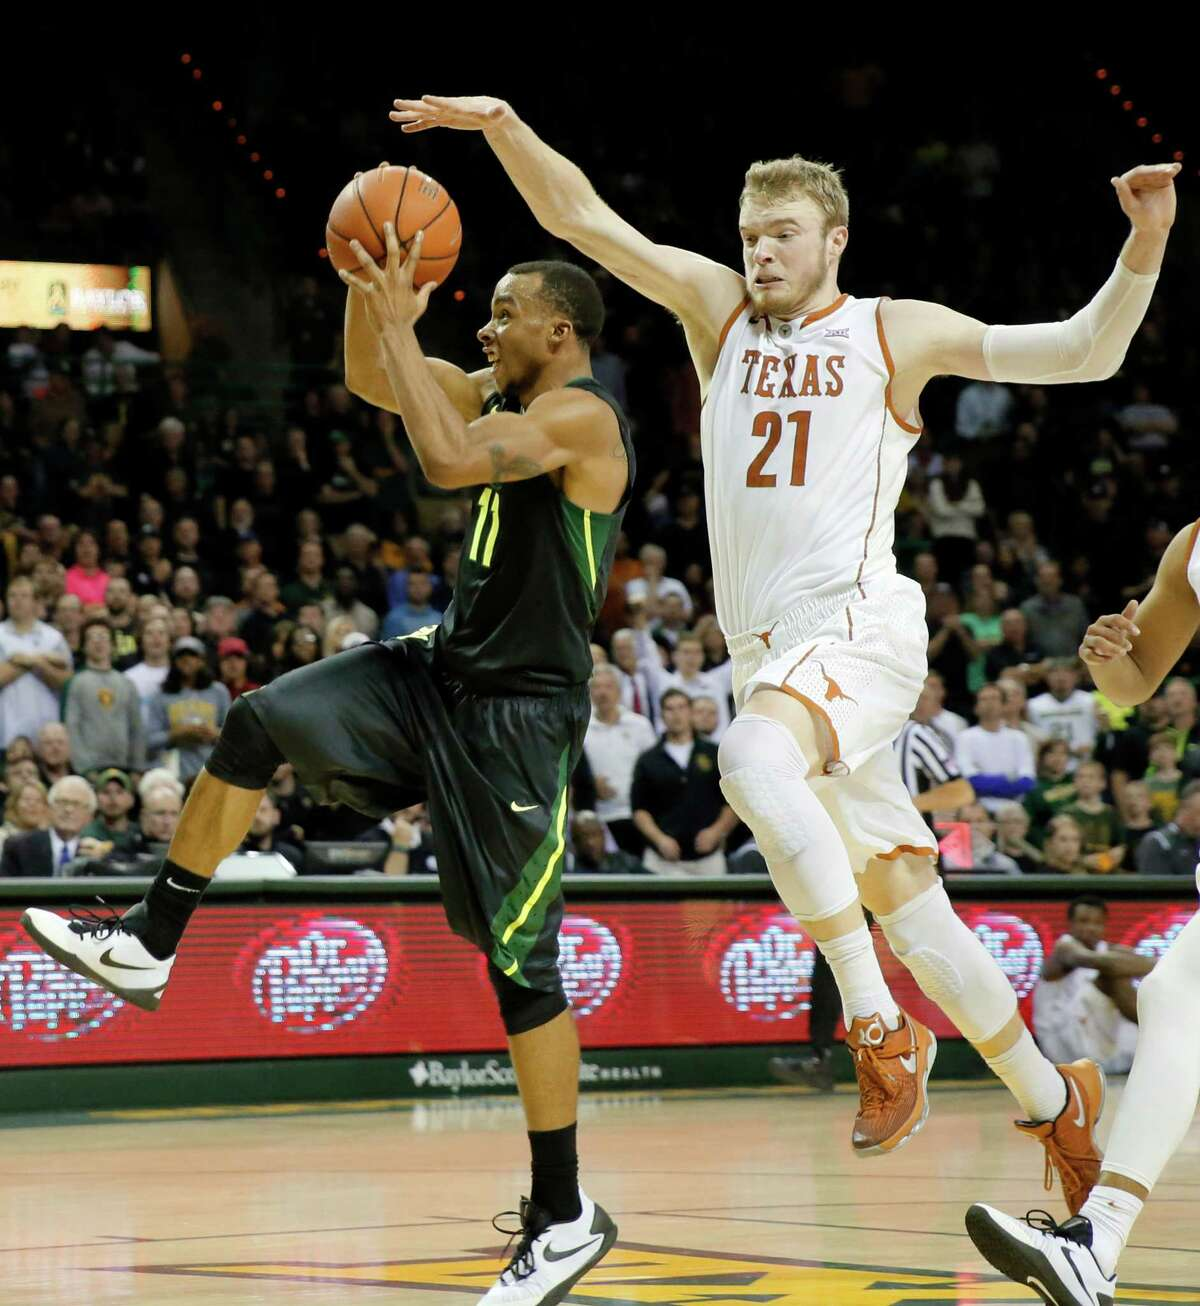 Baylor guard Lester Medford (11) goes up for a shot attempt as Texas forward Connor Lammert (21) defends in the second half of an NCAA college basketball game, Monday, Feb. 1, 2016, in Waco, Texas. Texas won 67-59. (AP Photo/Tony Gutierrez)